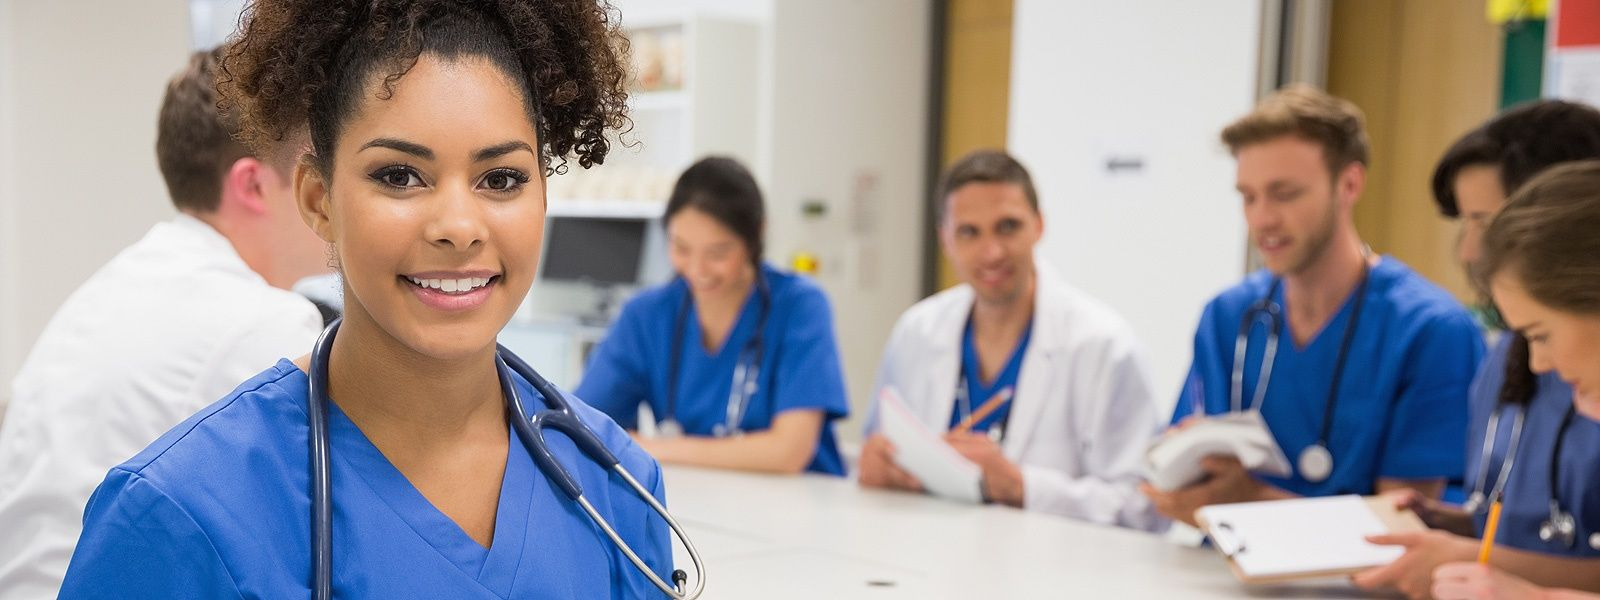 accelerated nursing programs in nyc